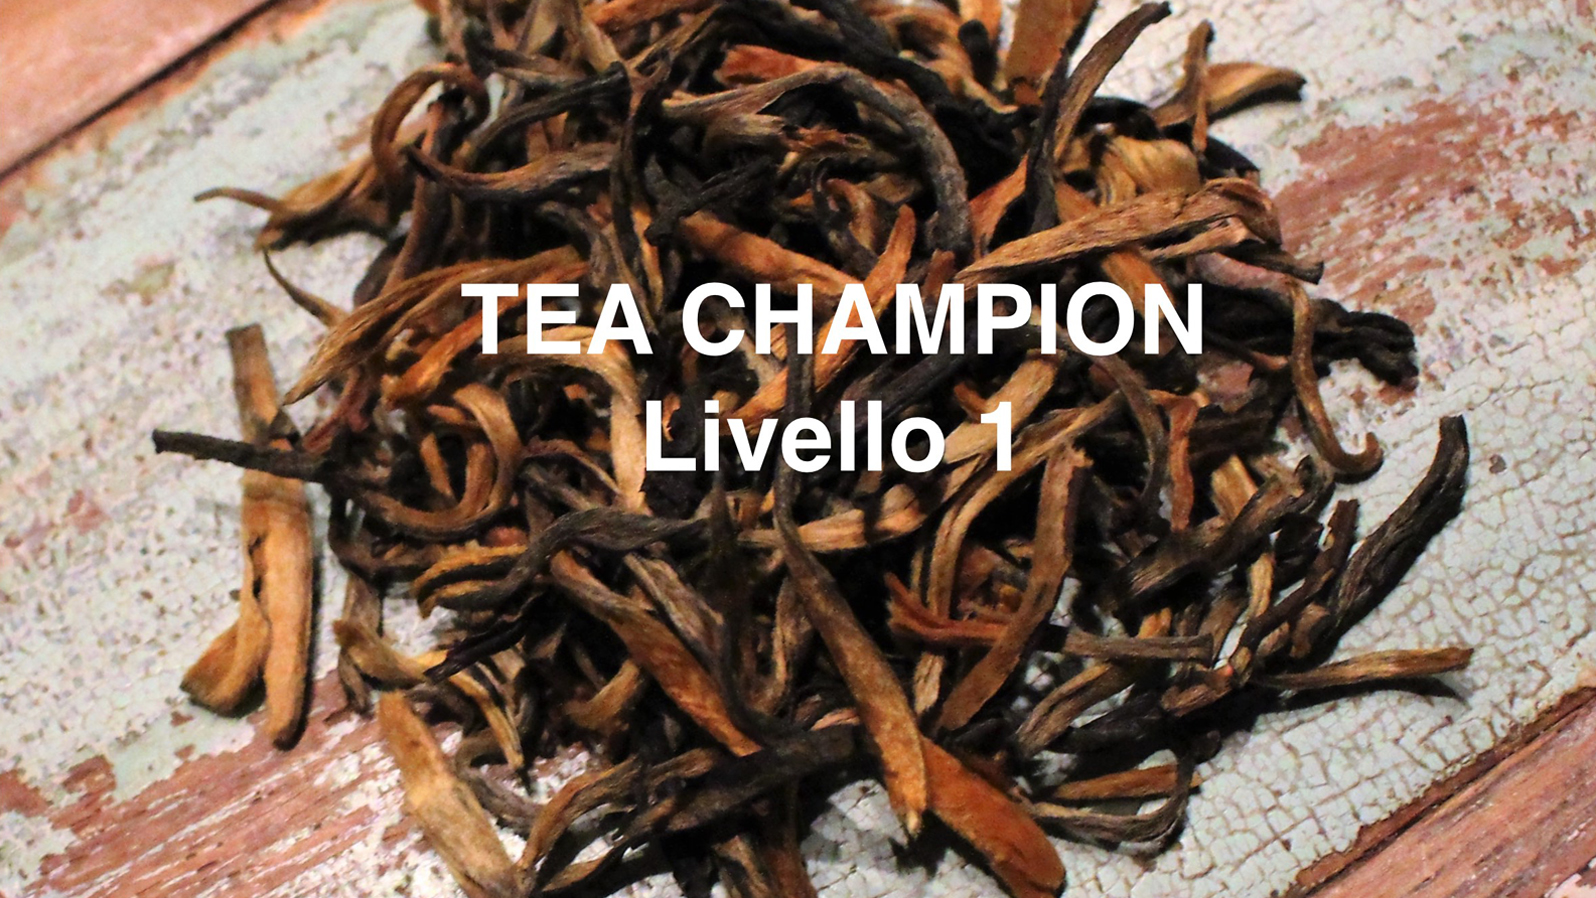 tea chmapion level 1 sec